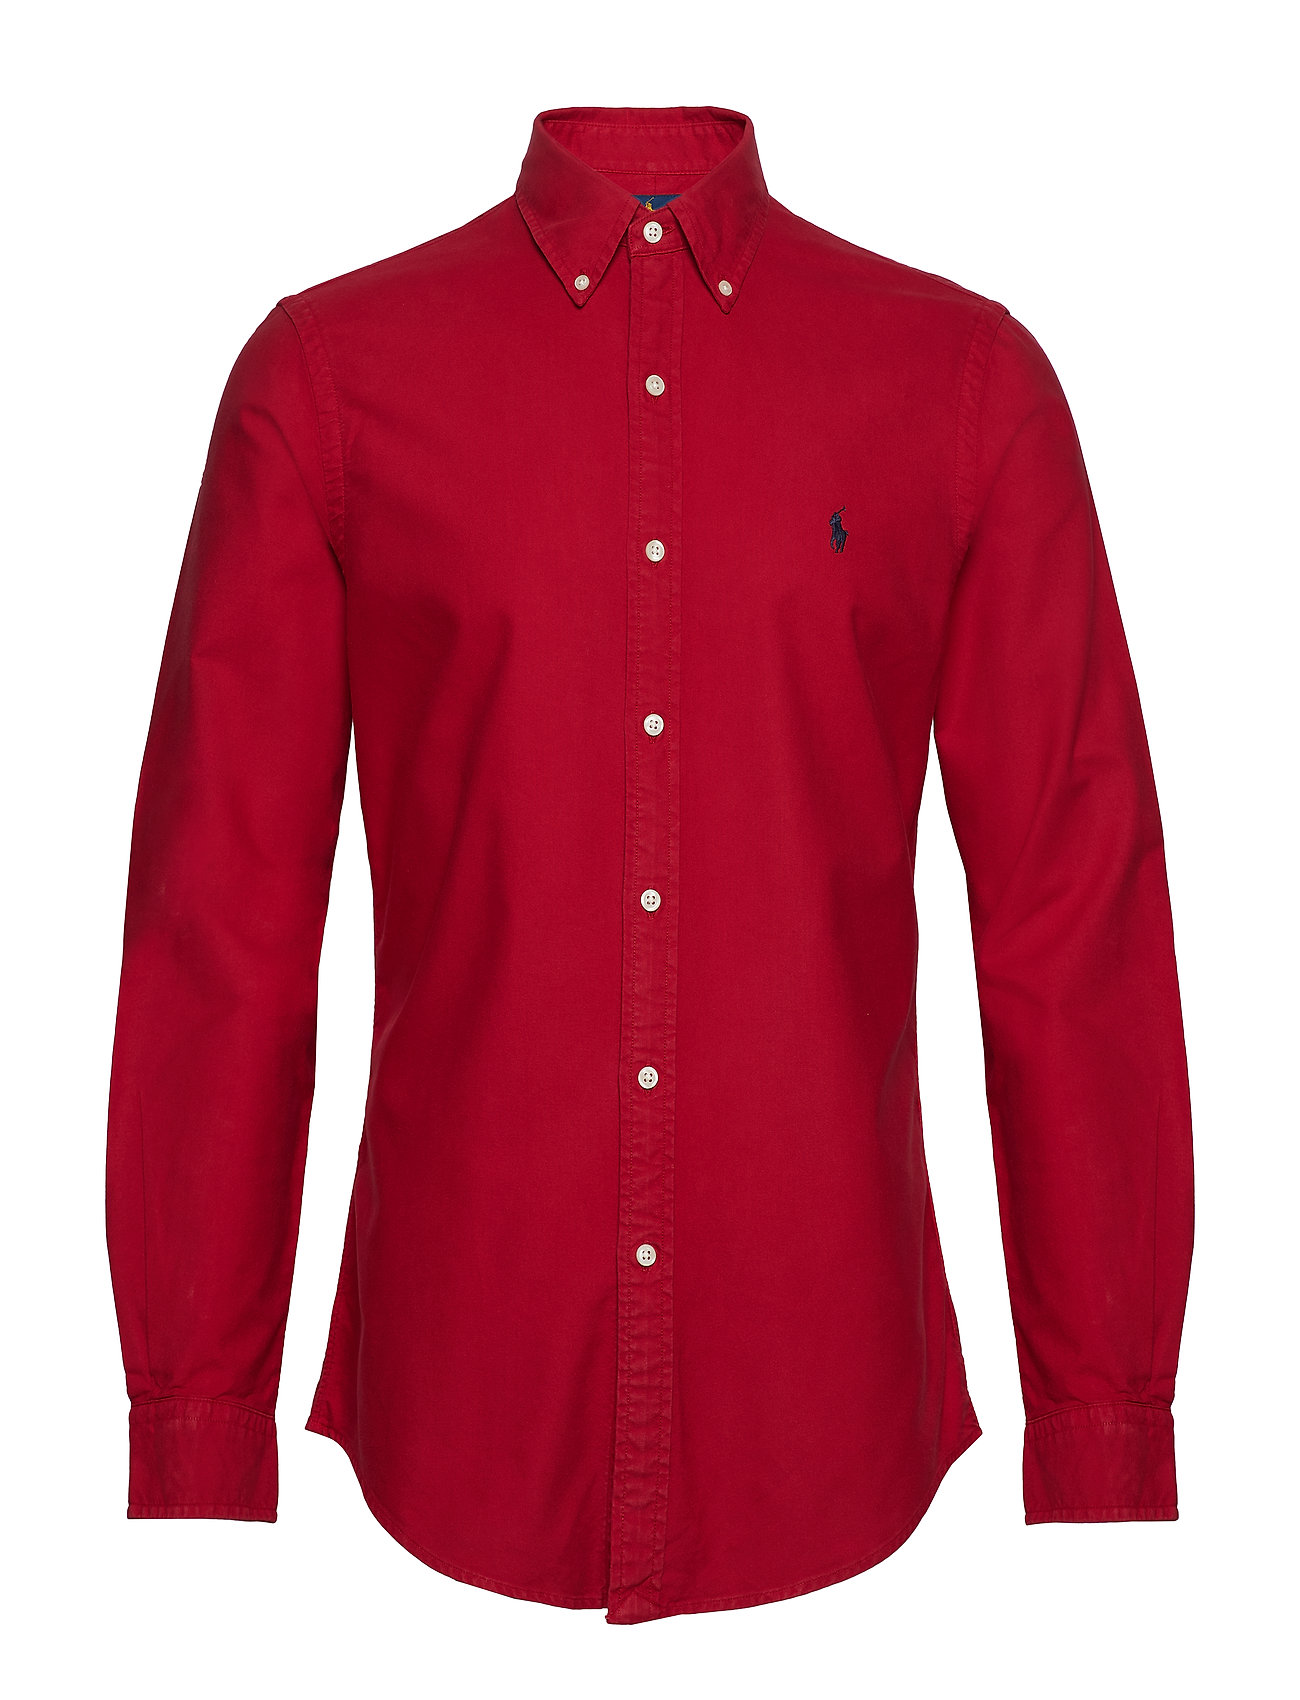 Polo Ralph Lauren SL BD PPC SP-LONG SLEEVE-SPORT SHIRT - PIONEER RED